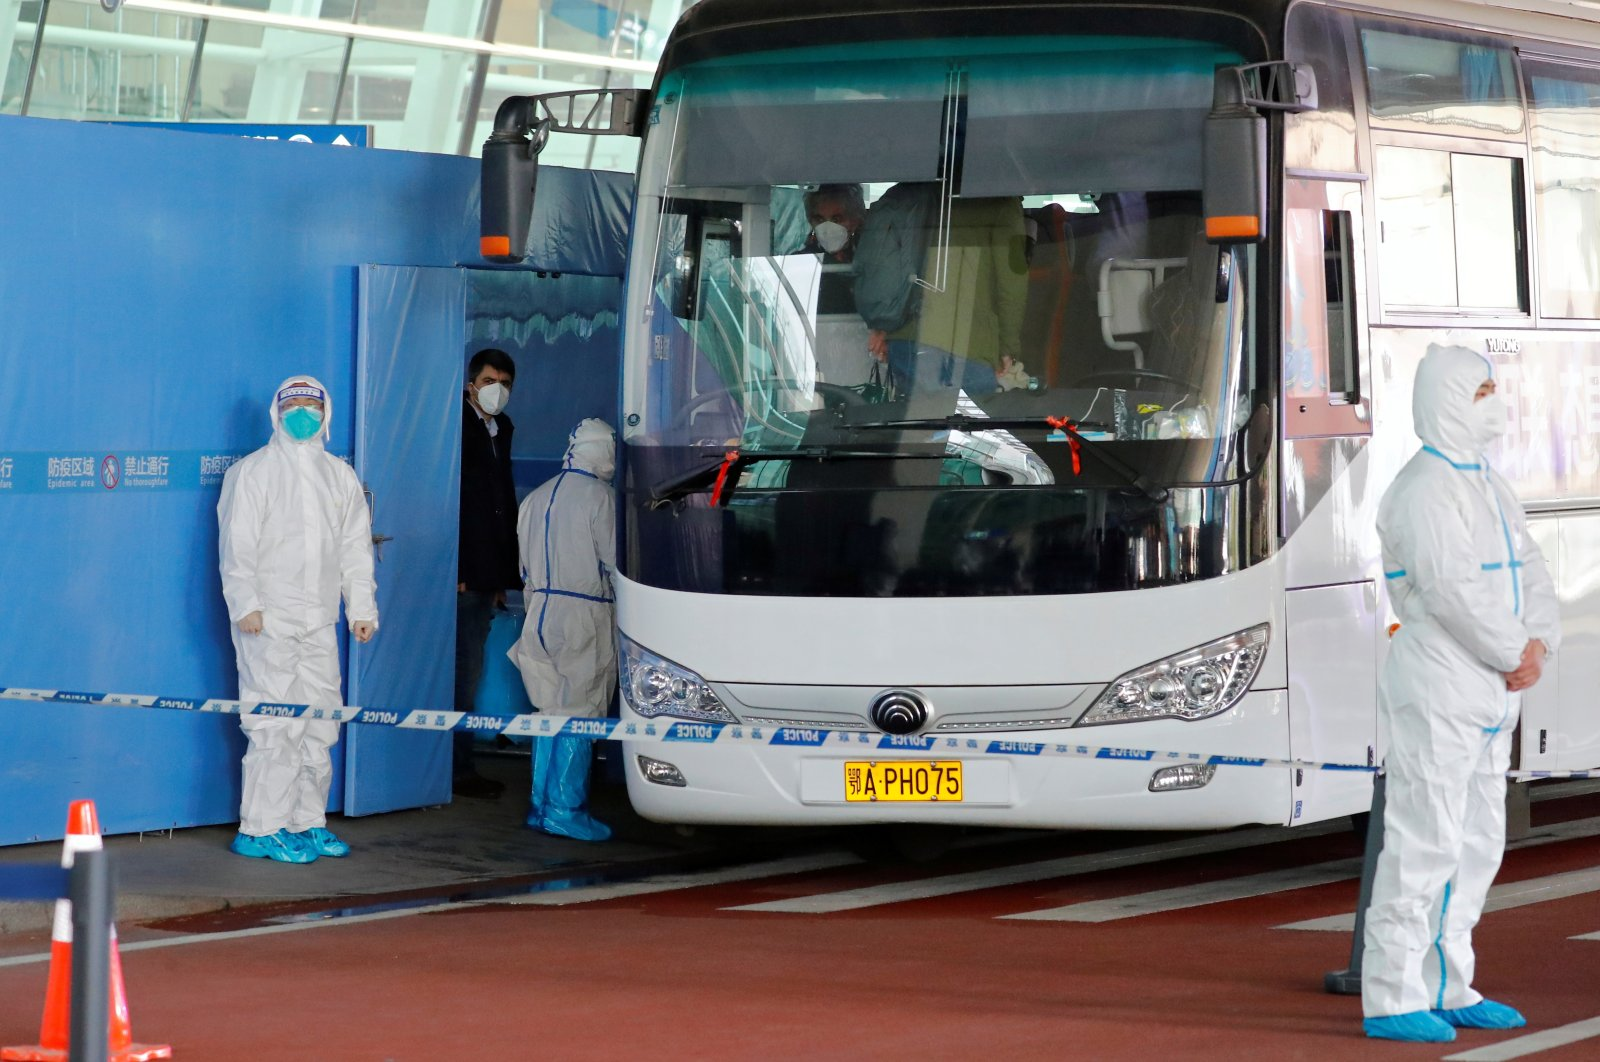 Members of the World Health Organization (WHO) team tasked with investigating the origins of the COVID-19 pandemic board a bus before leaving Wuhan Tianhe International Airport in Wuhan, Hubei province, China, Jan. 14, 2021. (Reuters Photo)